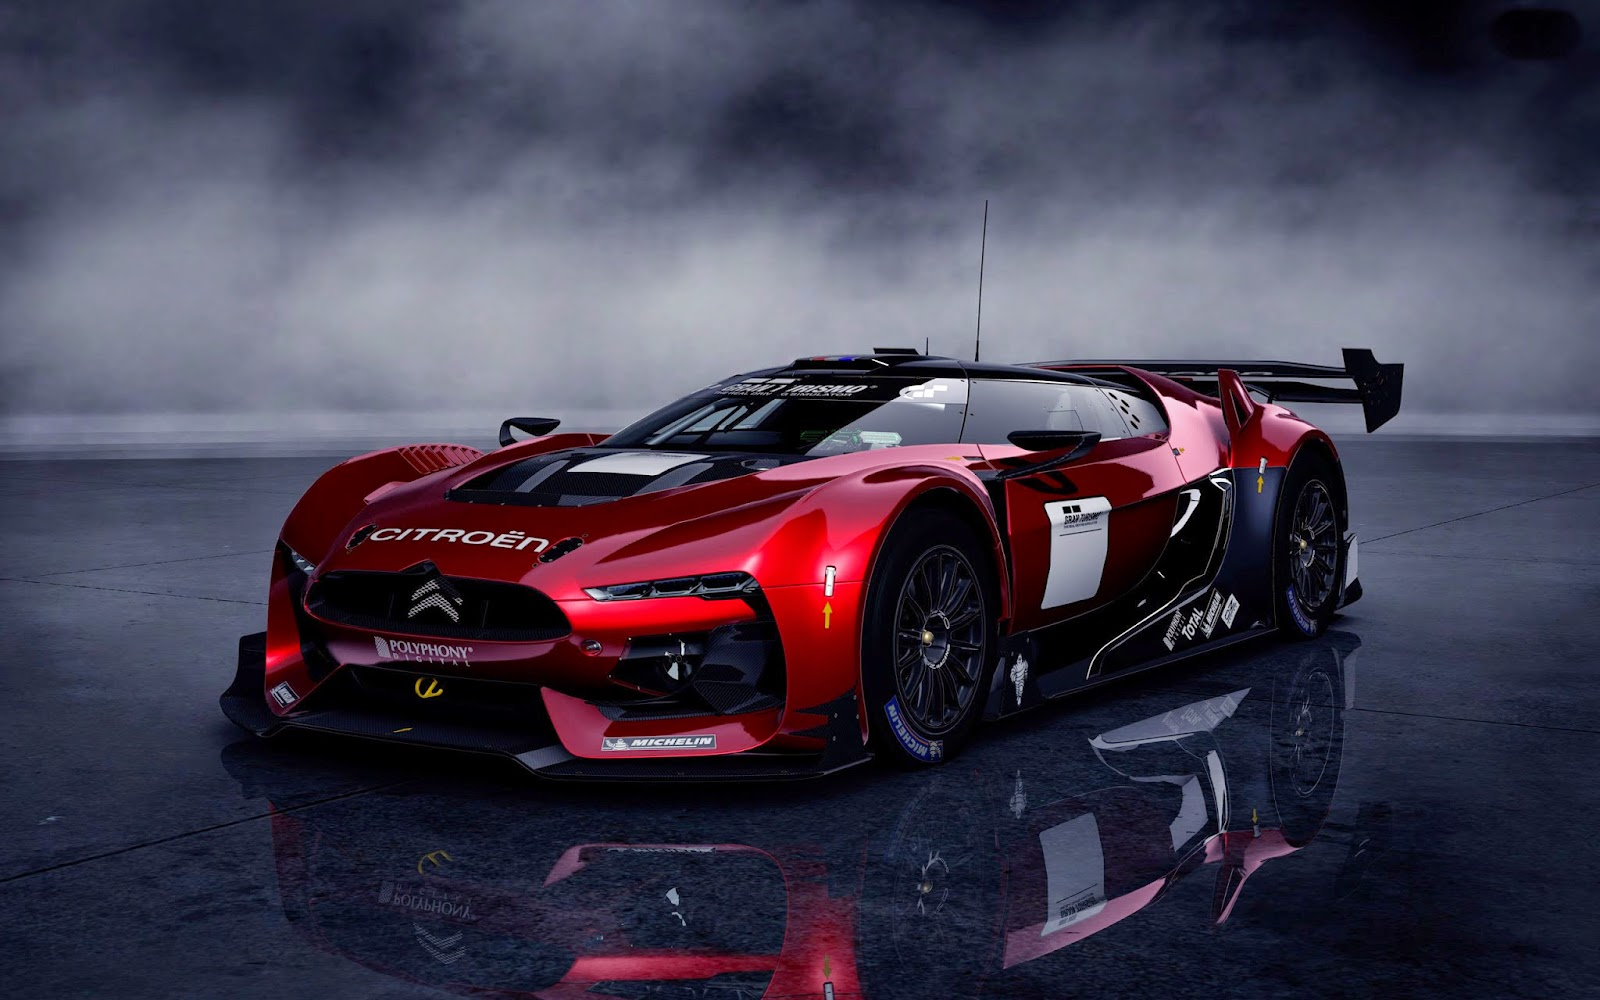 Hd Cool Car Wallpapers Fast Cars: Fast Speed Cool Cars Wallpapers Download For Free